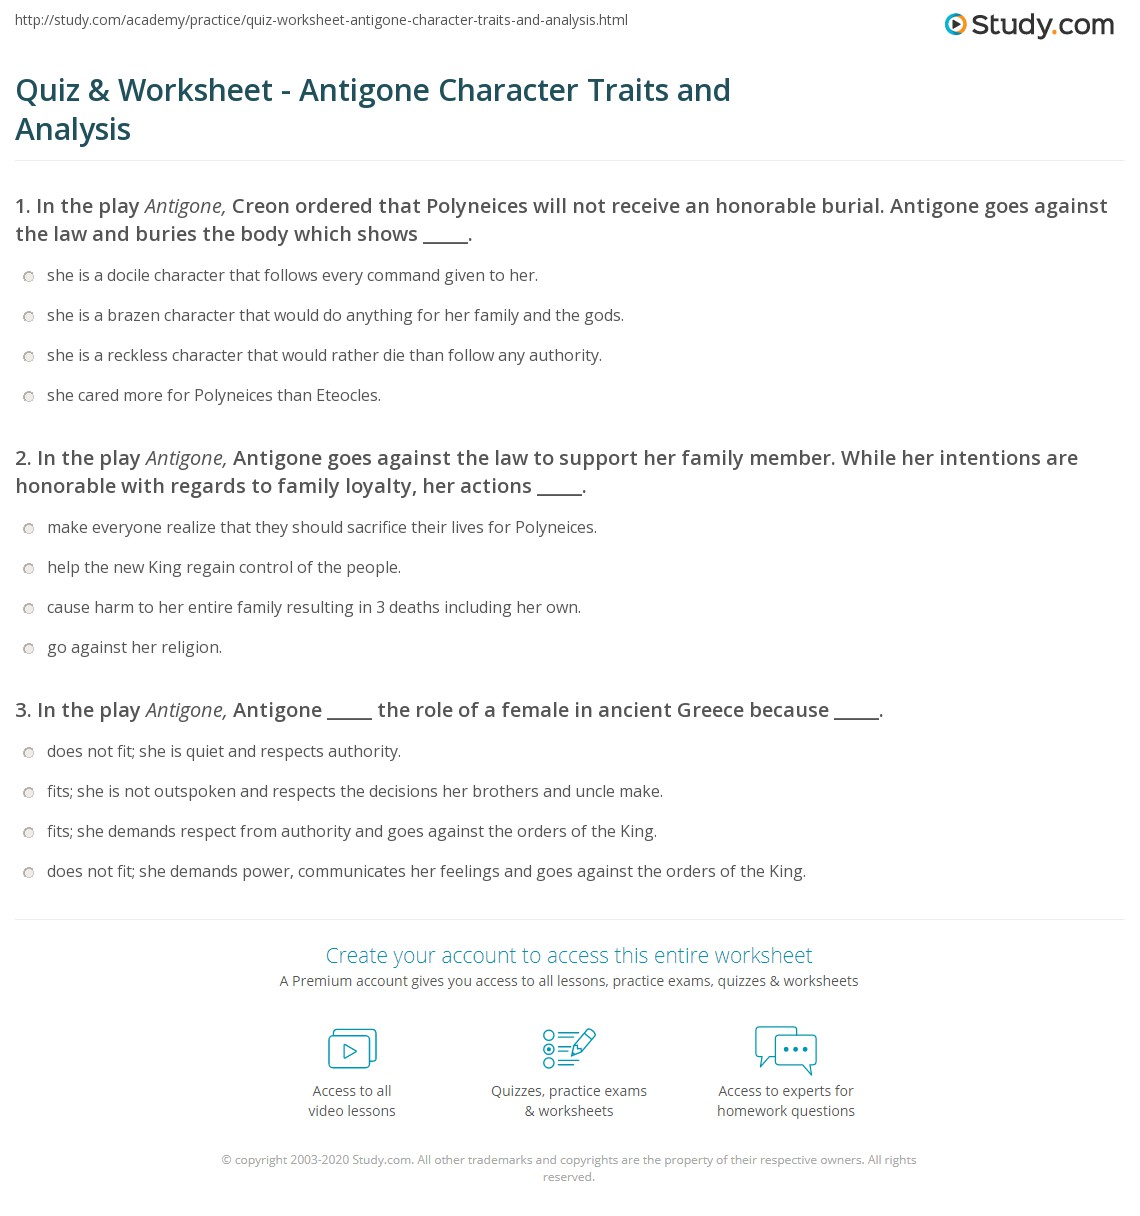 quiz worksheet antigone character traits and analysis com print antigone character traits and analysis worksheet